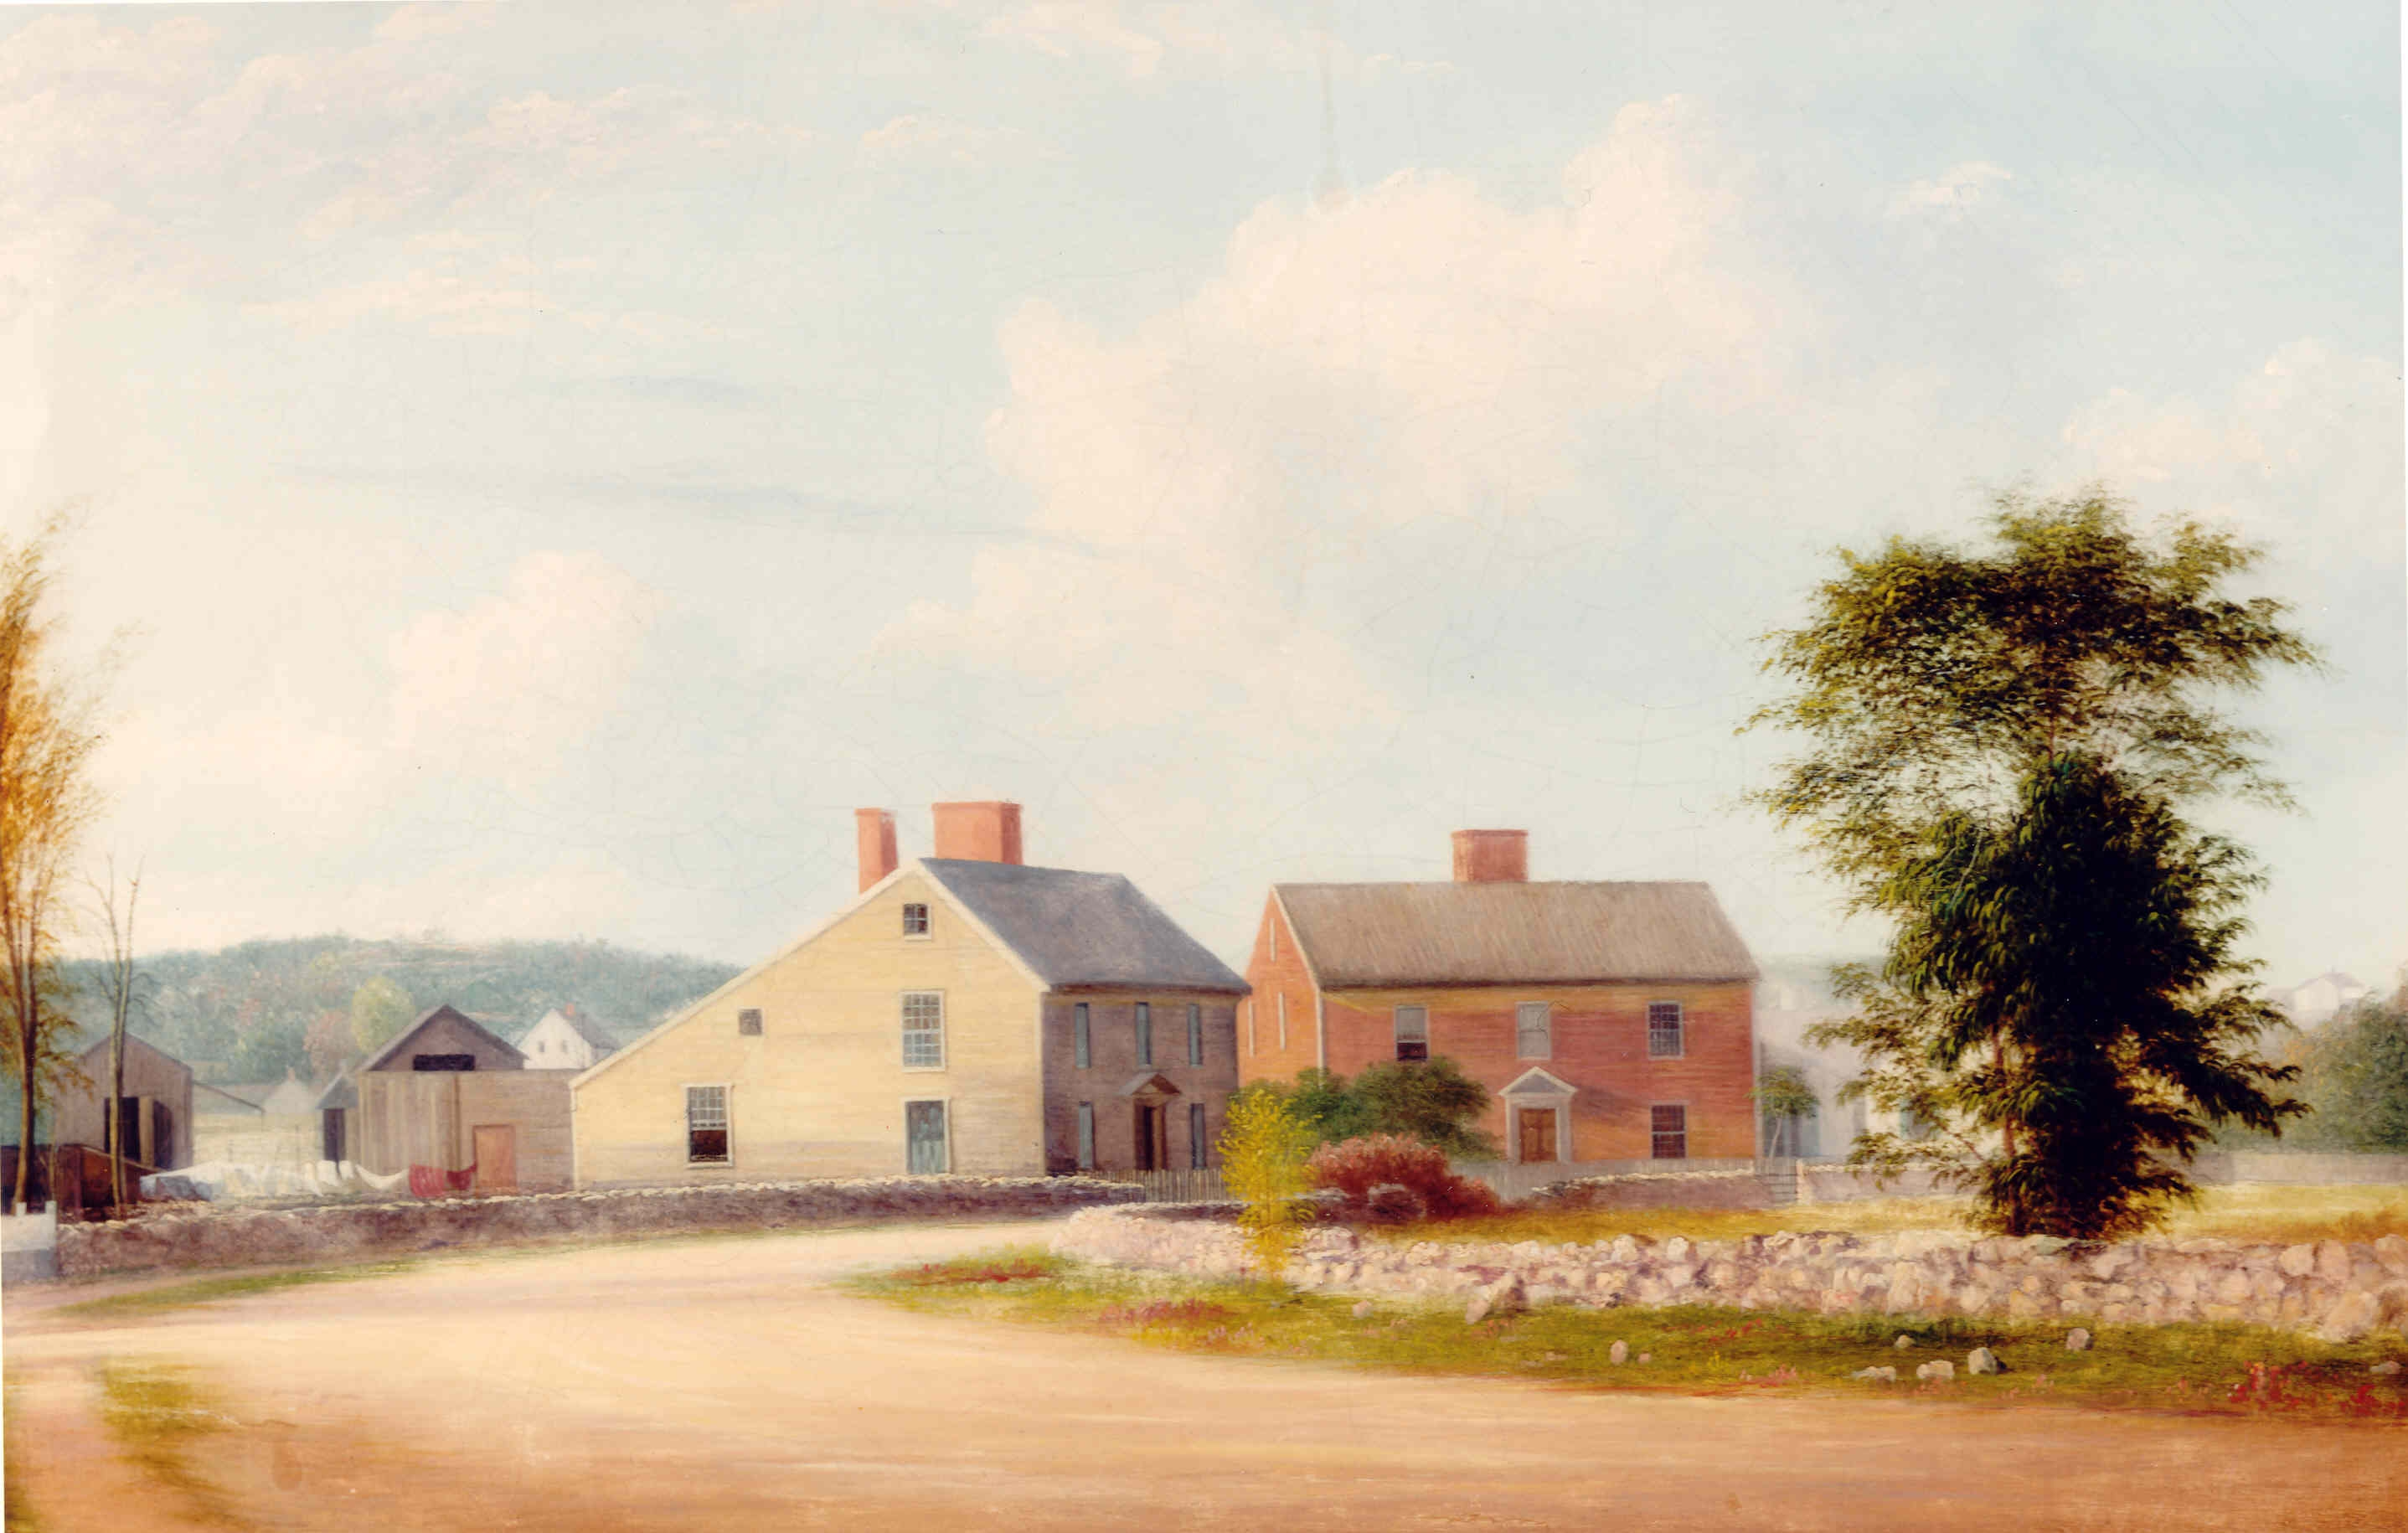 The Birthplace homes as painted by Godfrey Frankenstein in 1849.